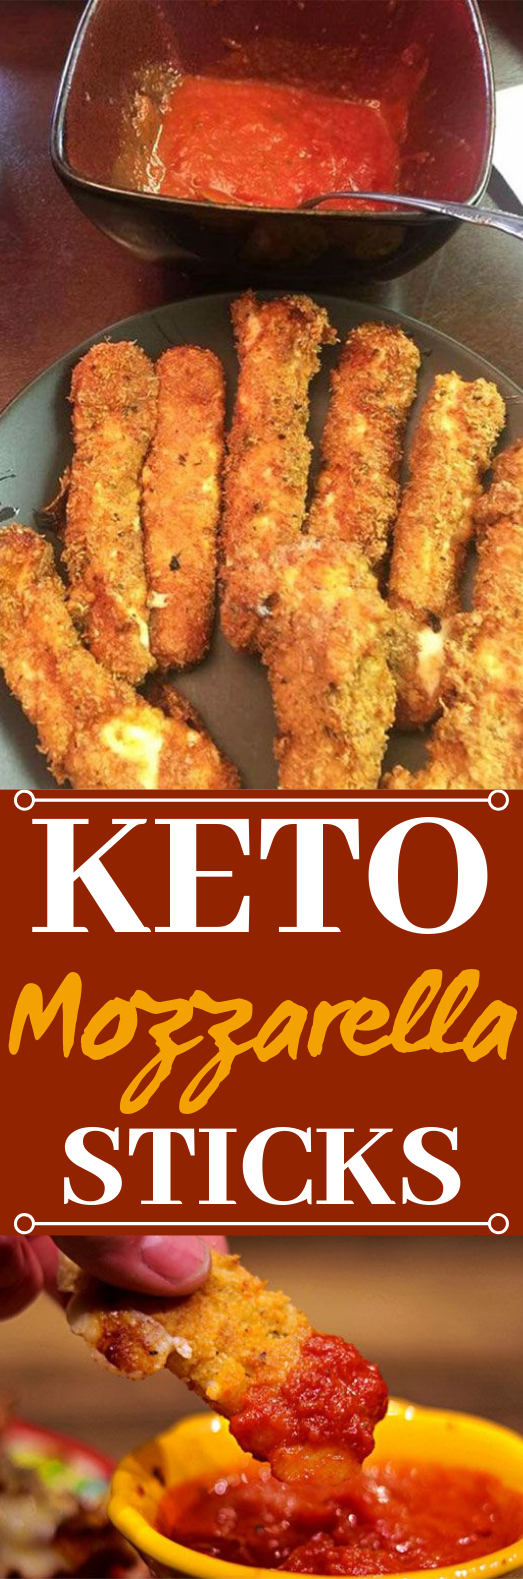 Keto Mozzarella Sticks (Ready in Less Than 30 Minutes) #healthy #snacks